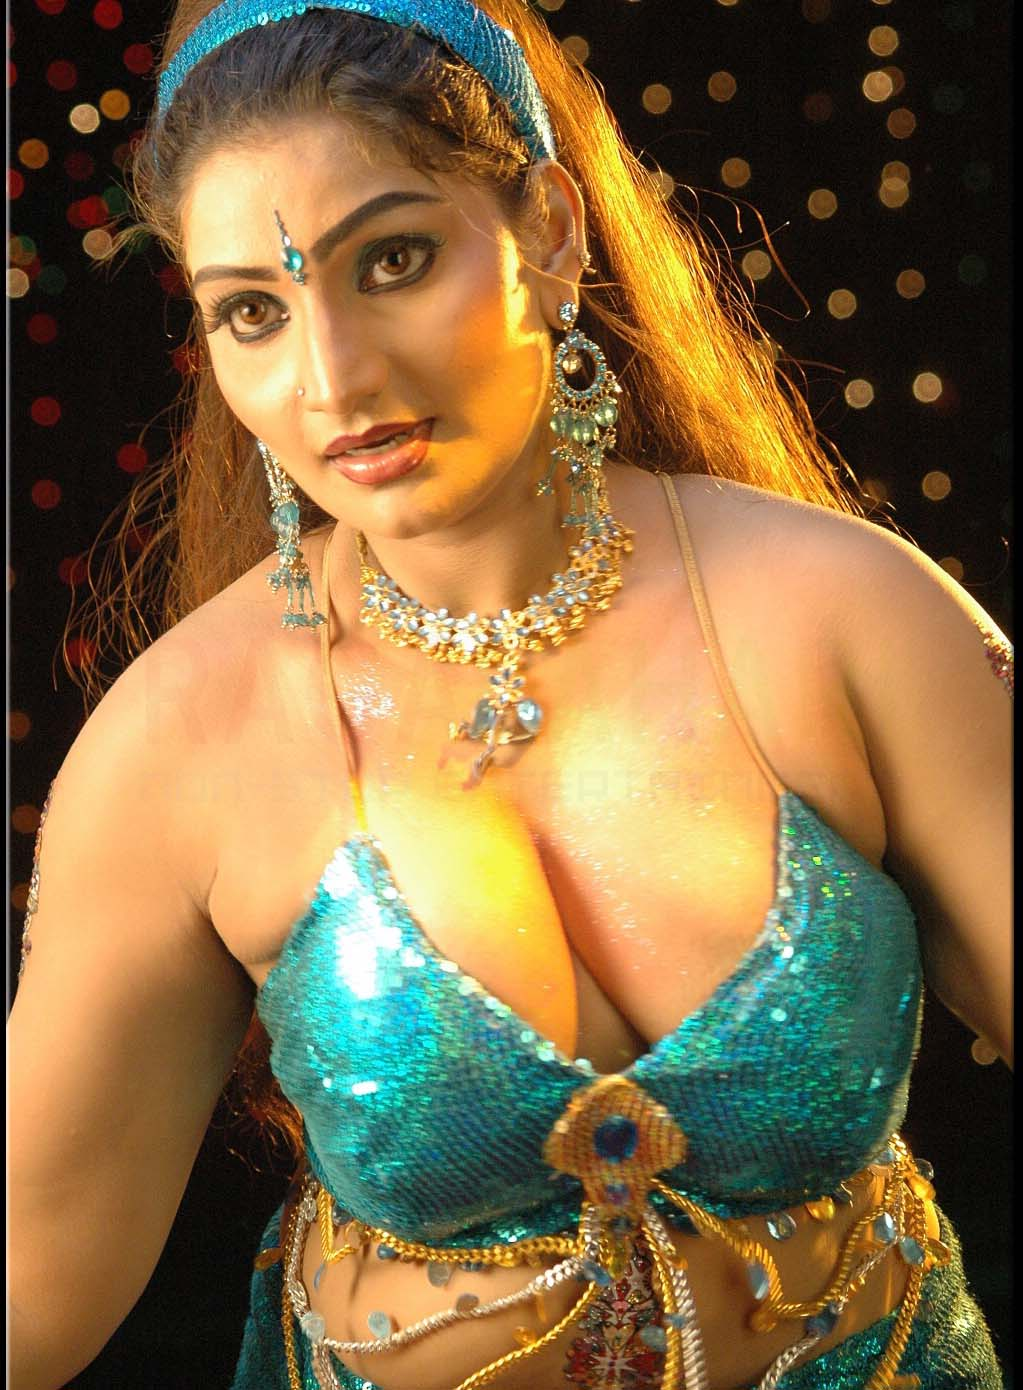 Hot Actress Hot Scene Hot Pictures Actress-5775